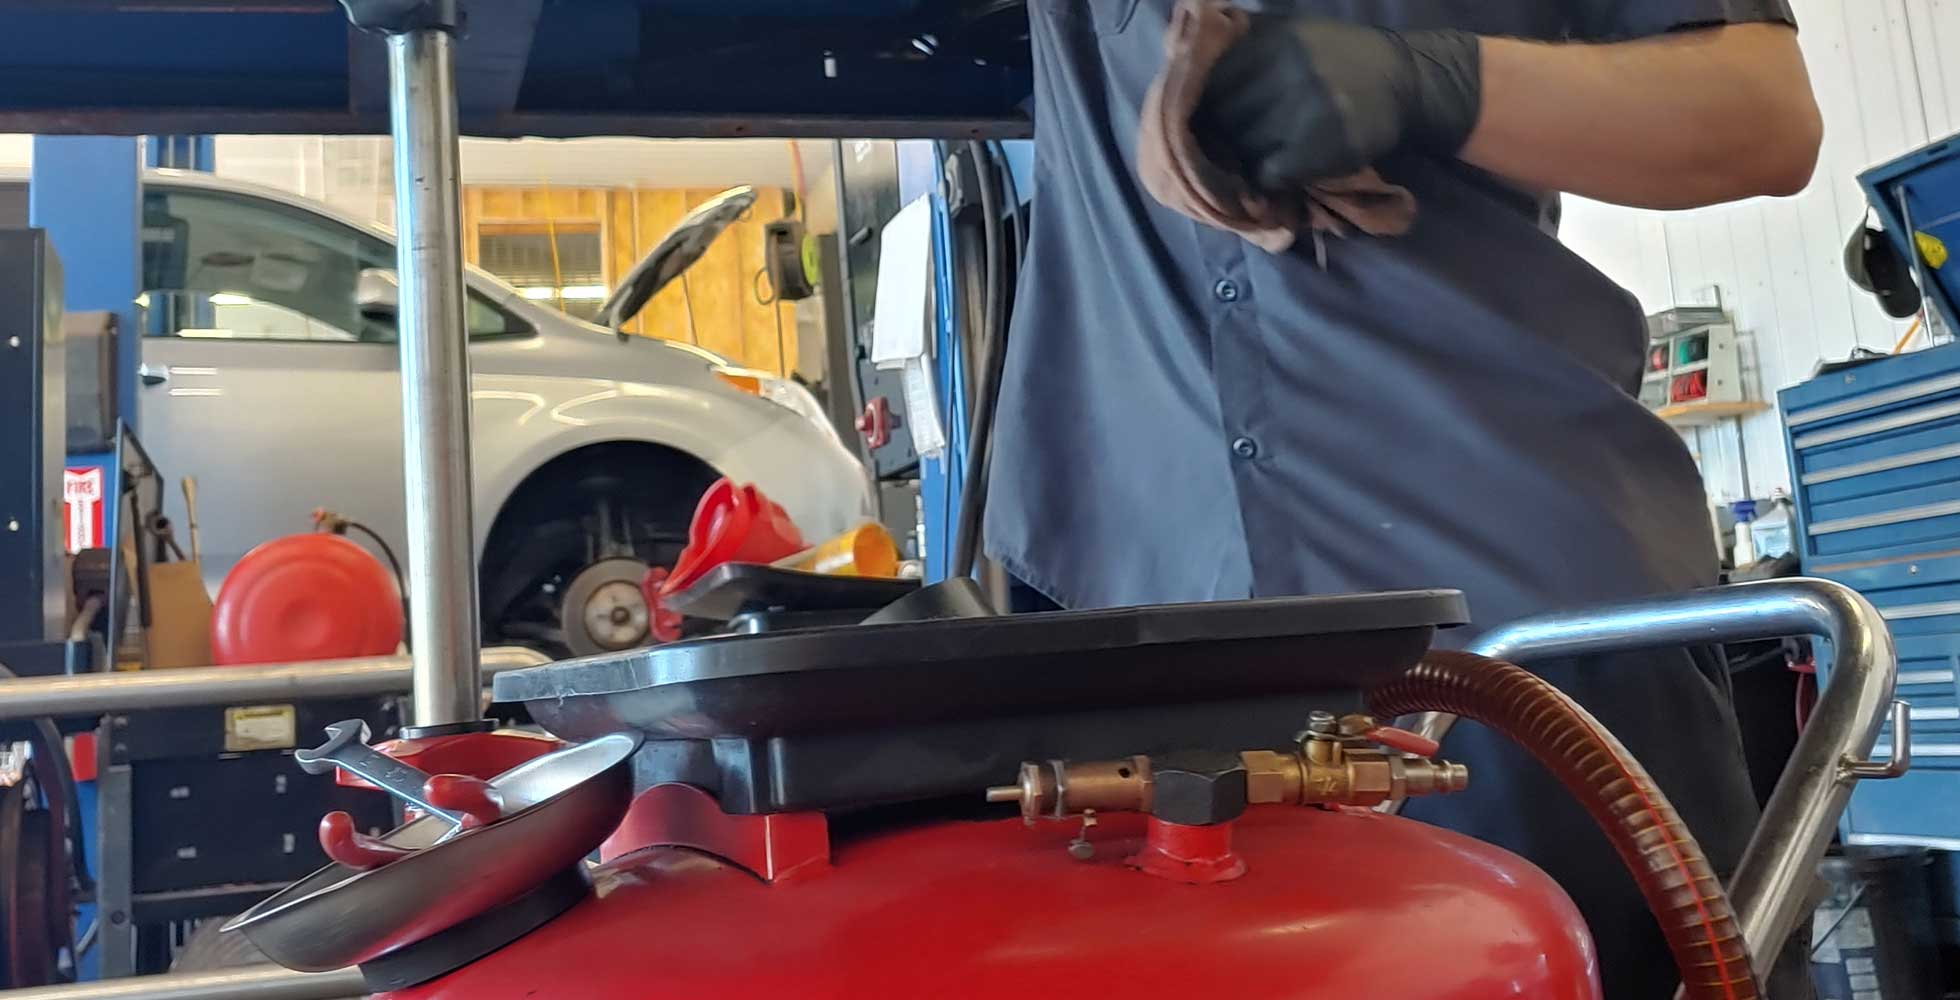 Paul's Auto Mechanic checks oil